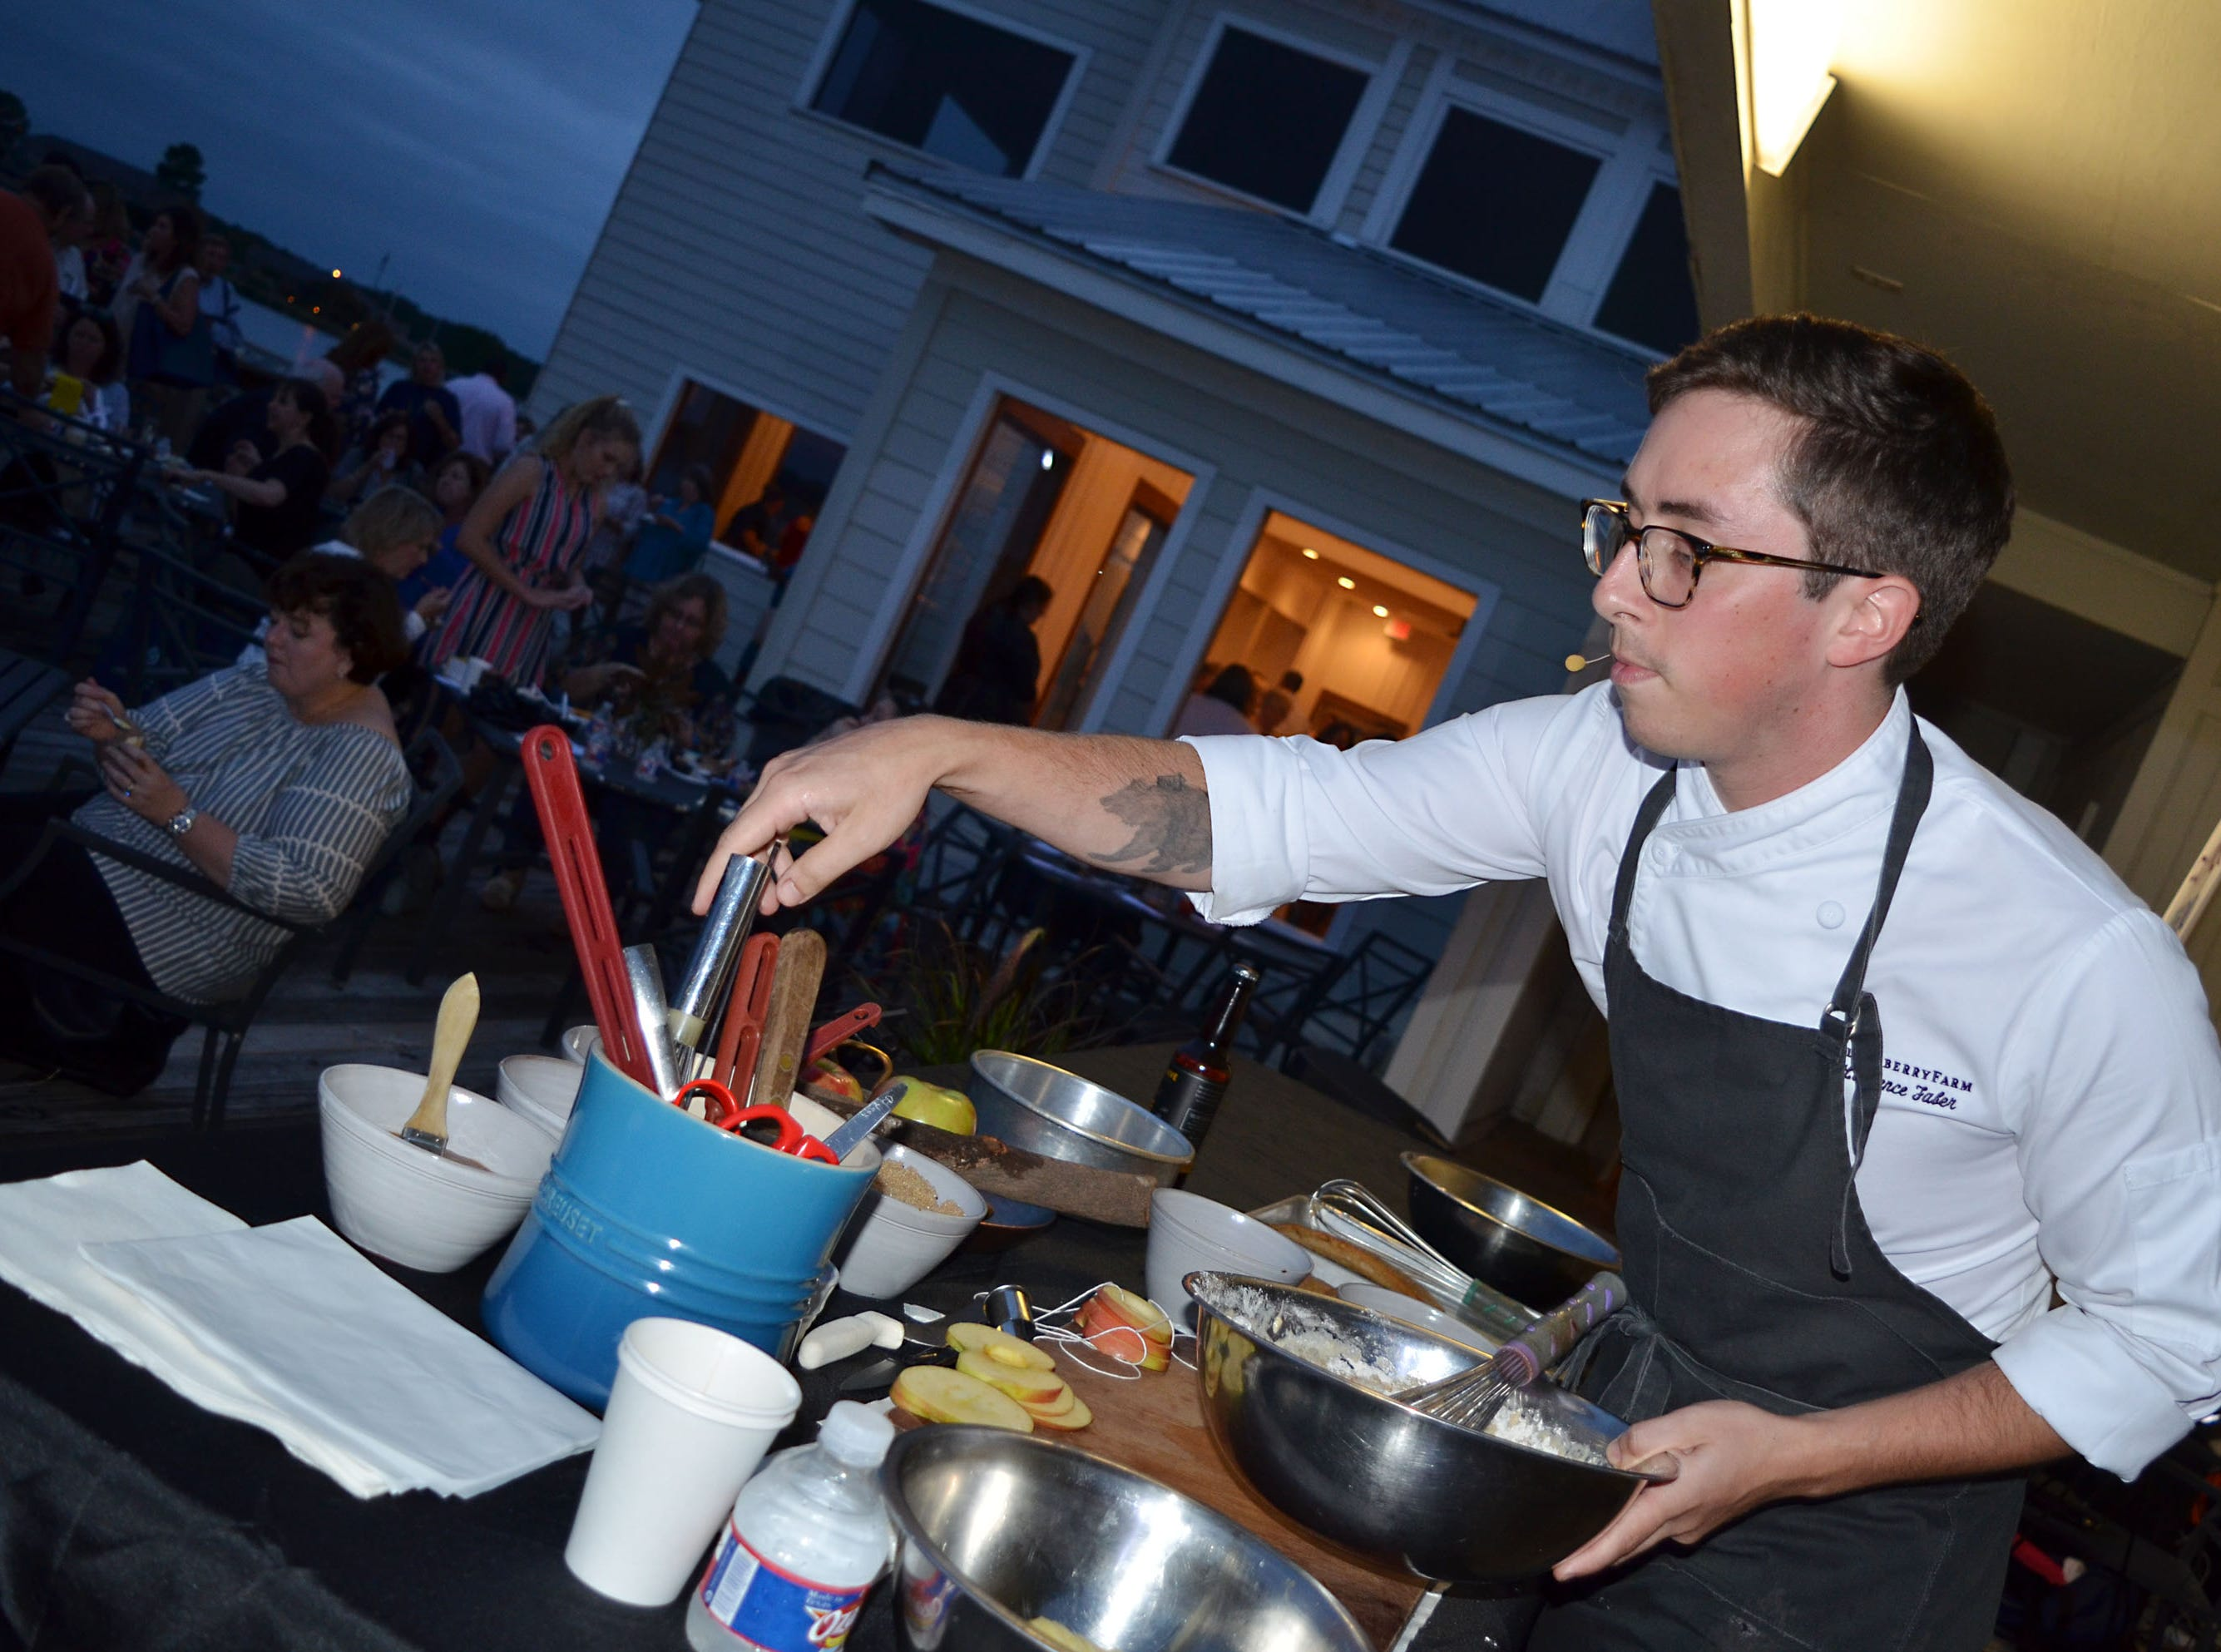 Laurence Faber with Blackberry Farm of Walland, Tennessee,  prepares apple cake during The Sweetest Chefs event held Monday.